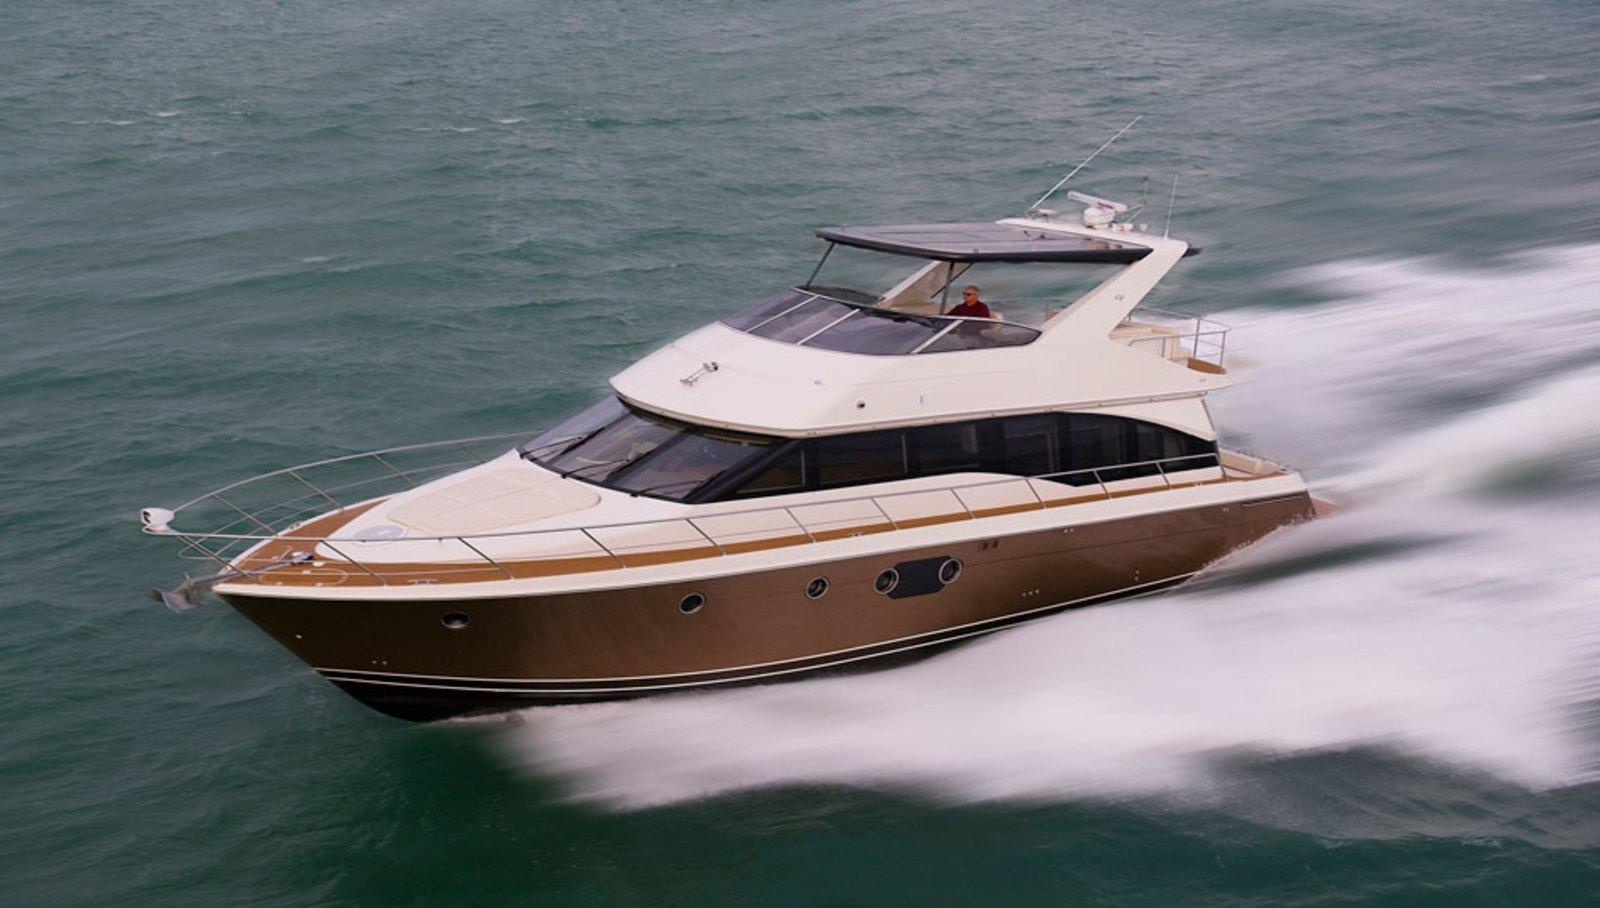 2014 Carver Yachts 54 Voyager Review - Top Speed